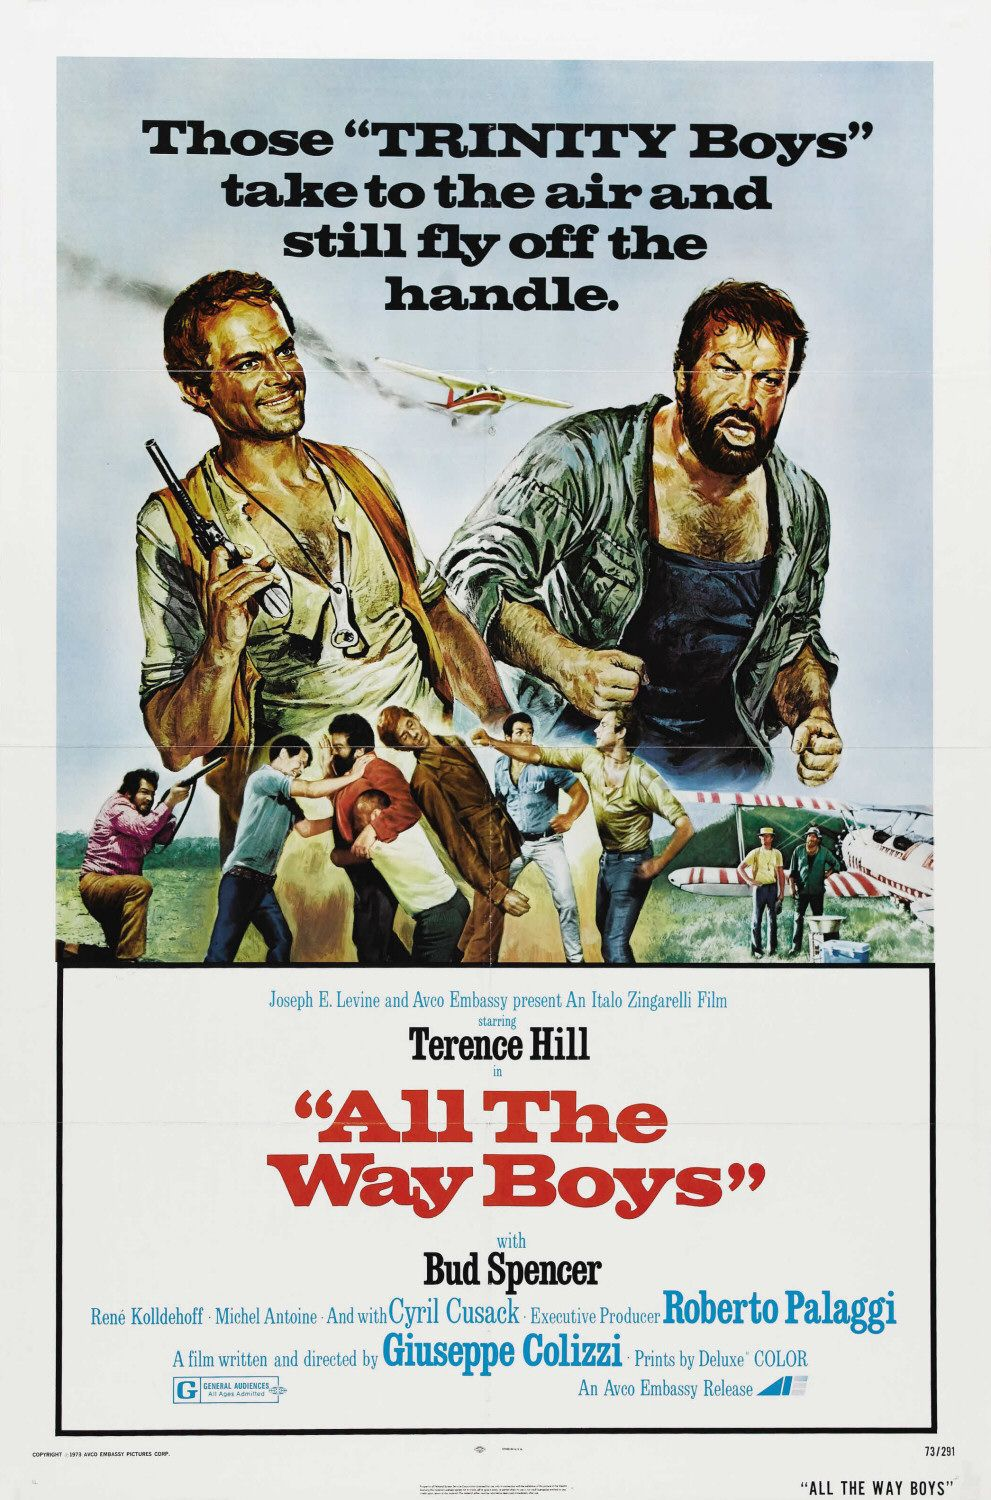 All the Way Boys - ... più forte Ragazzi!  - film poster